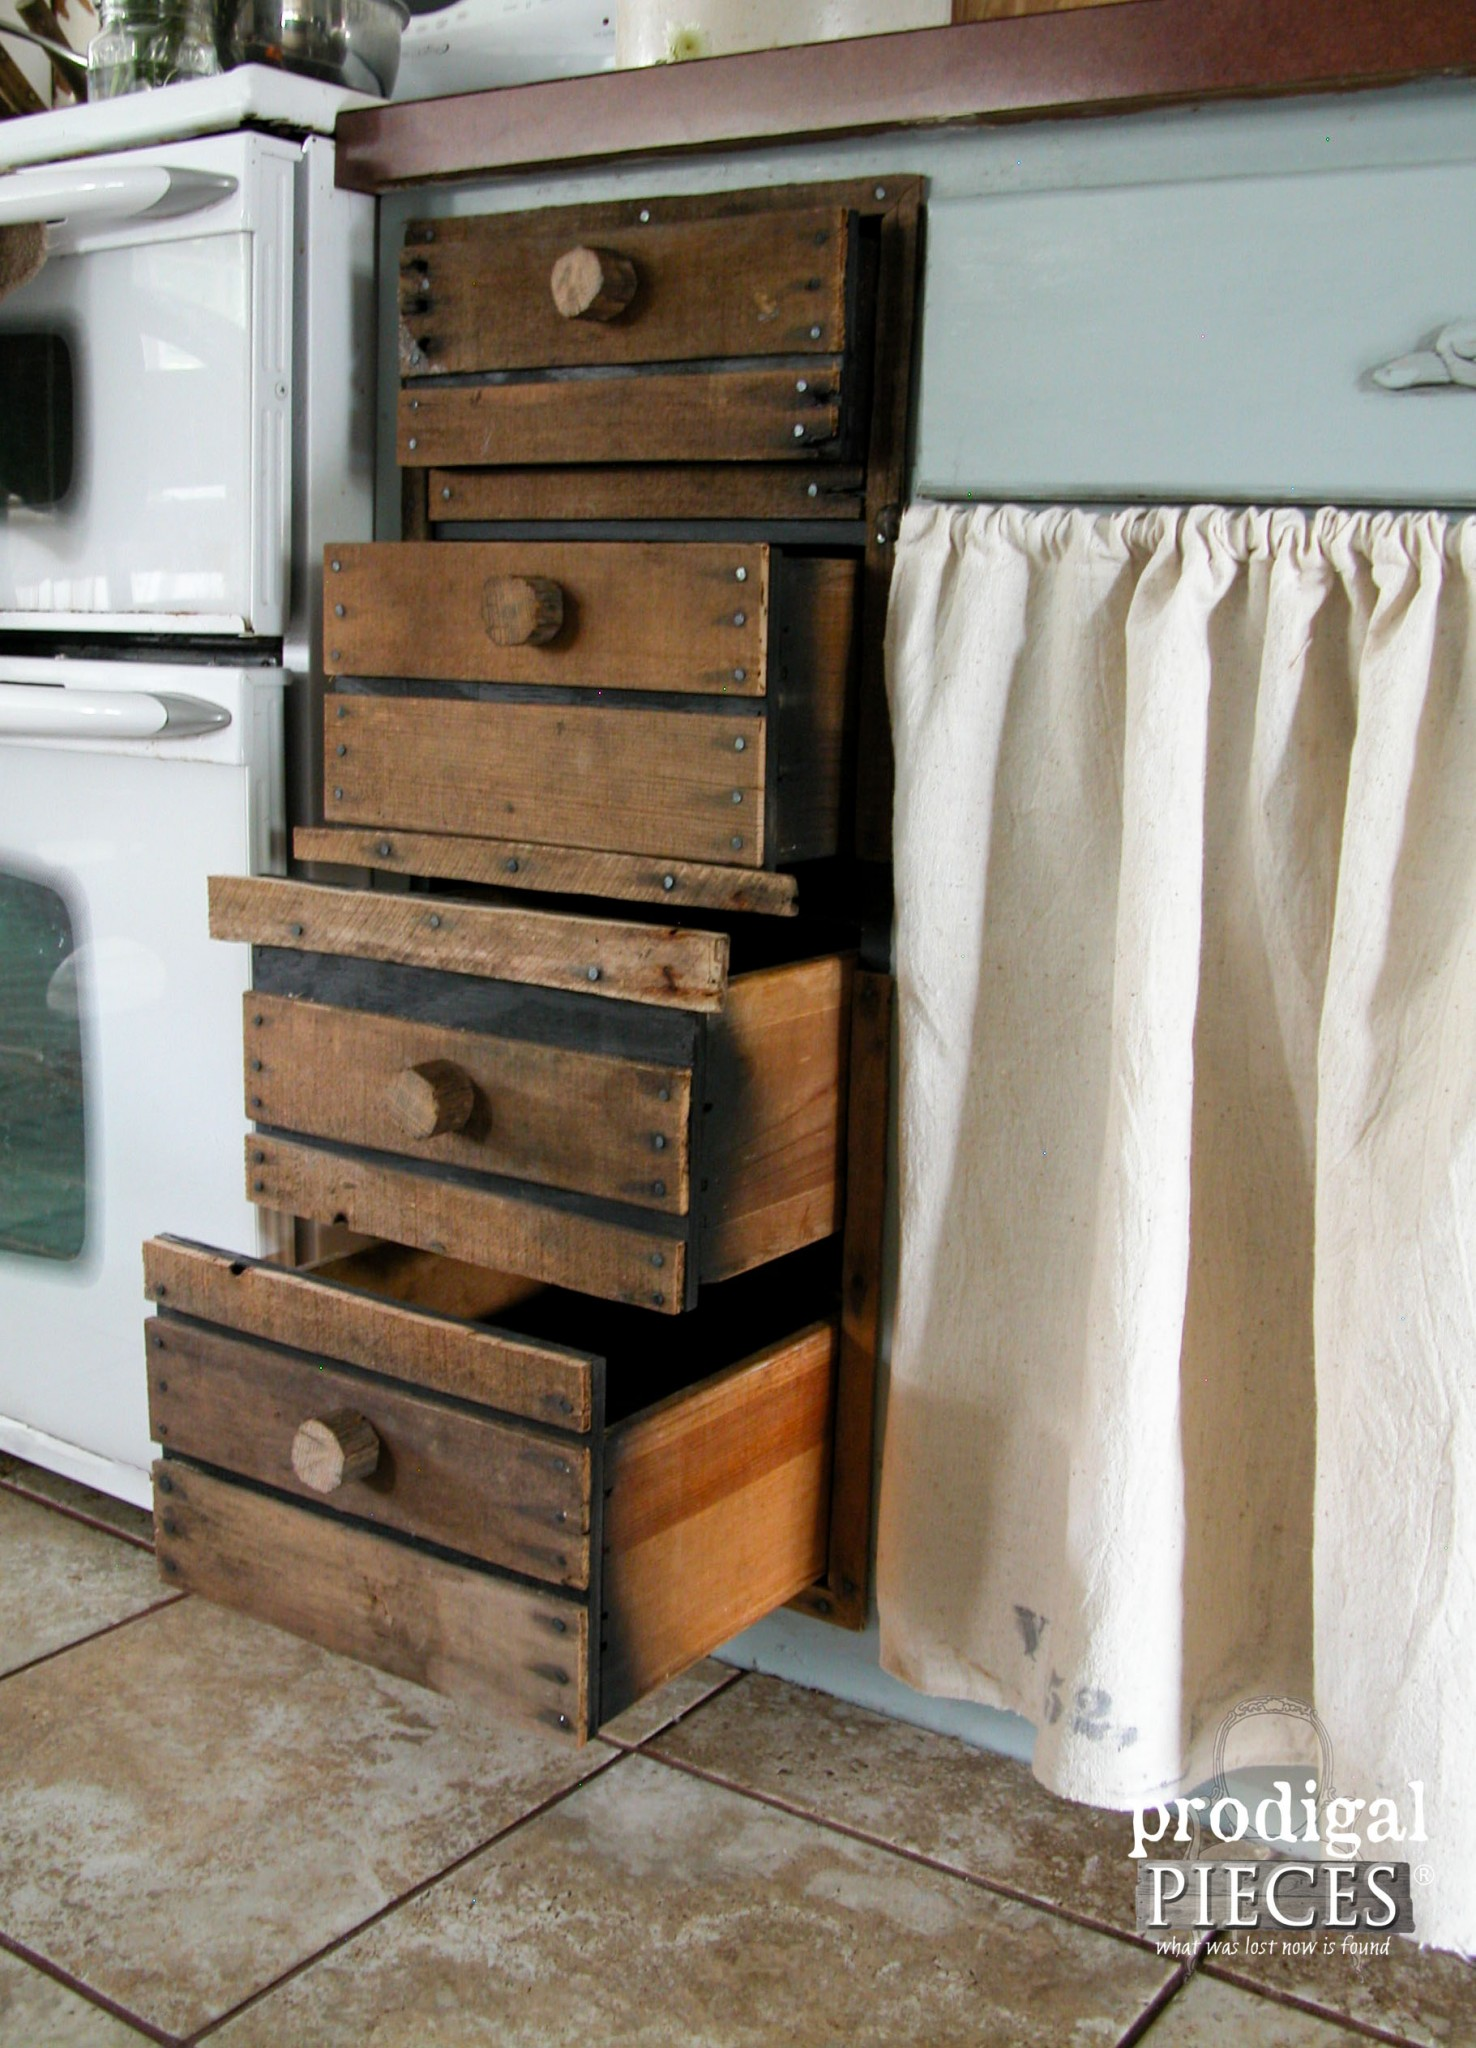 Faux Crate Drawers Open to Four Drawers | Prodigal Pieces | www.prodigalpieces.com